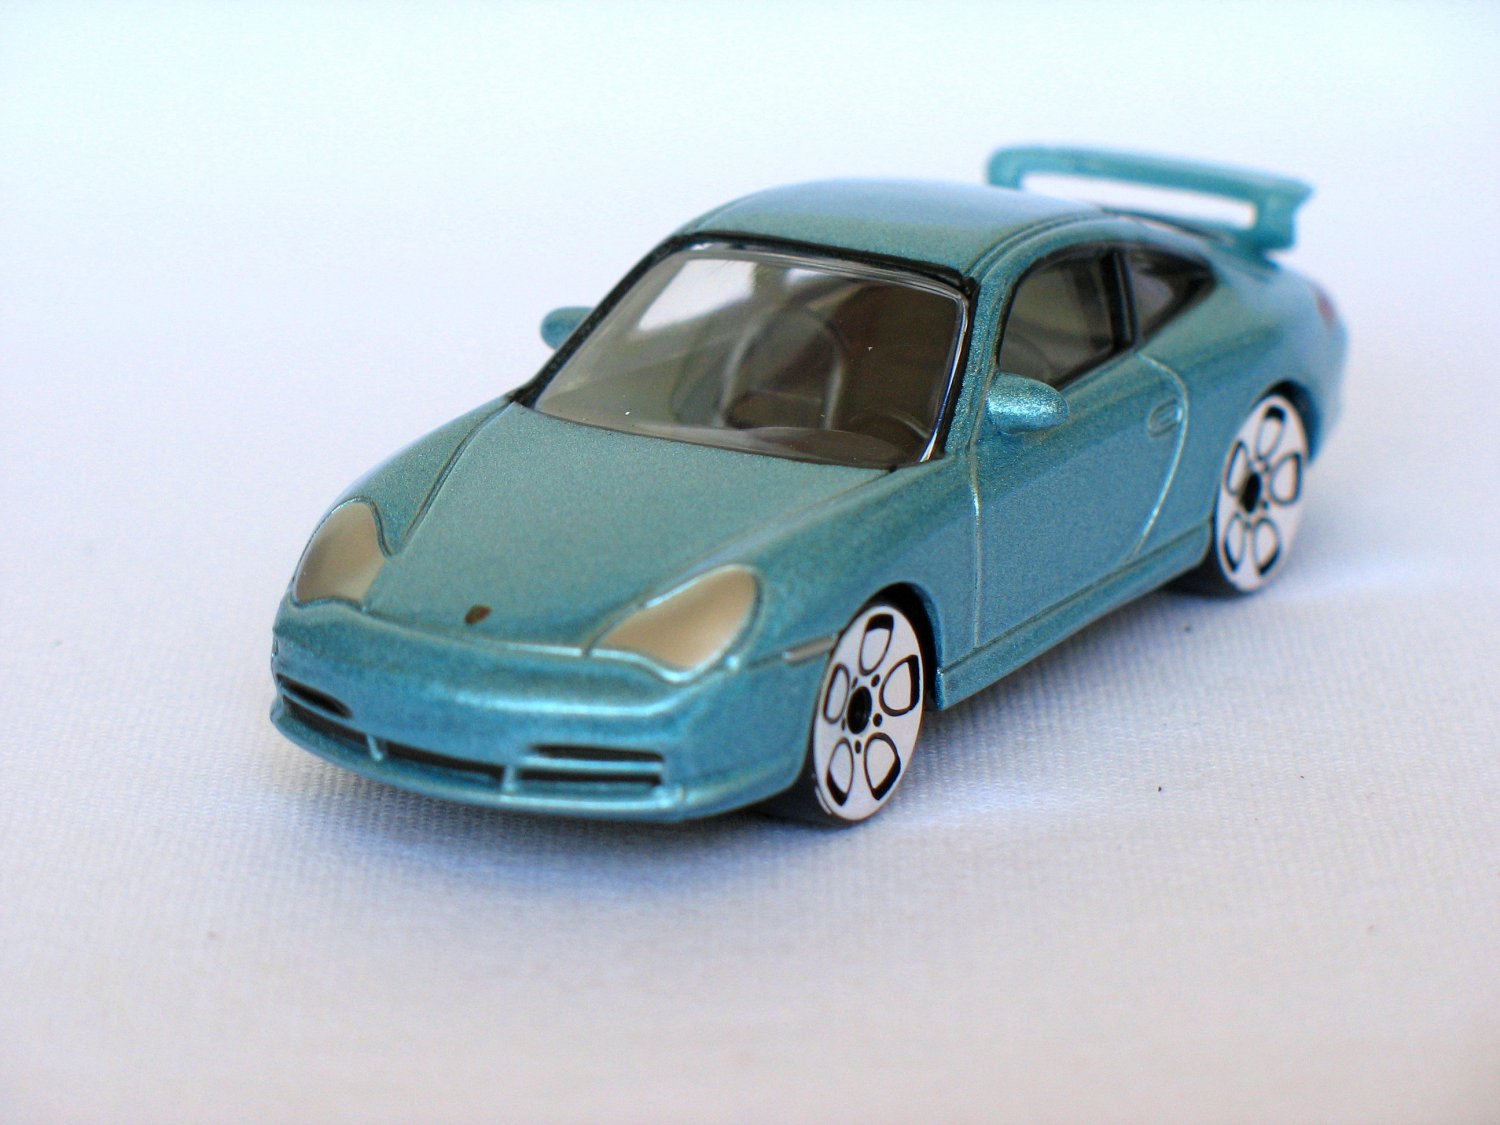 Porsche 911 GT3 blue 1/58 die cast model car